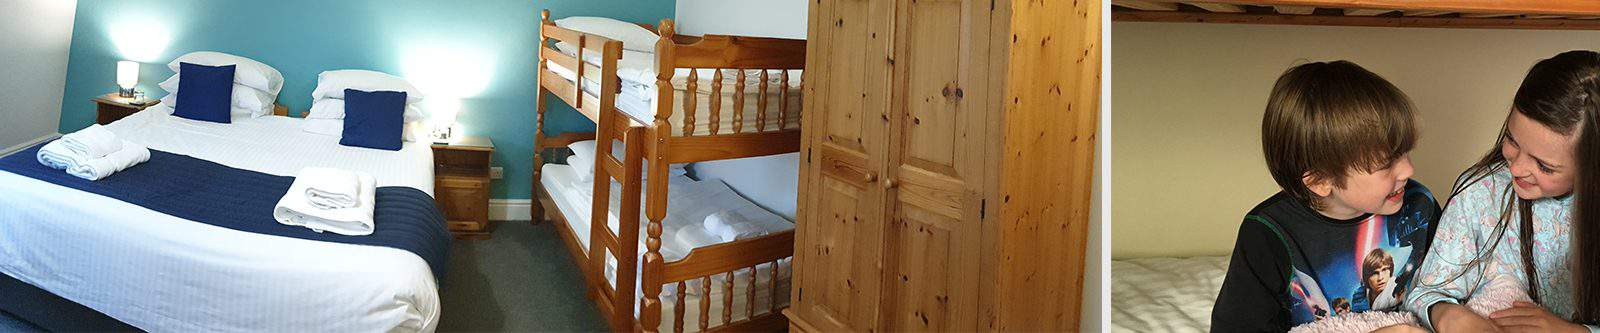 photo of family room and children on bunk beds